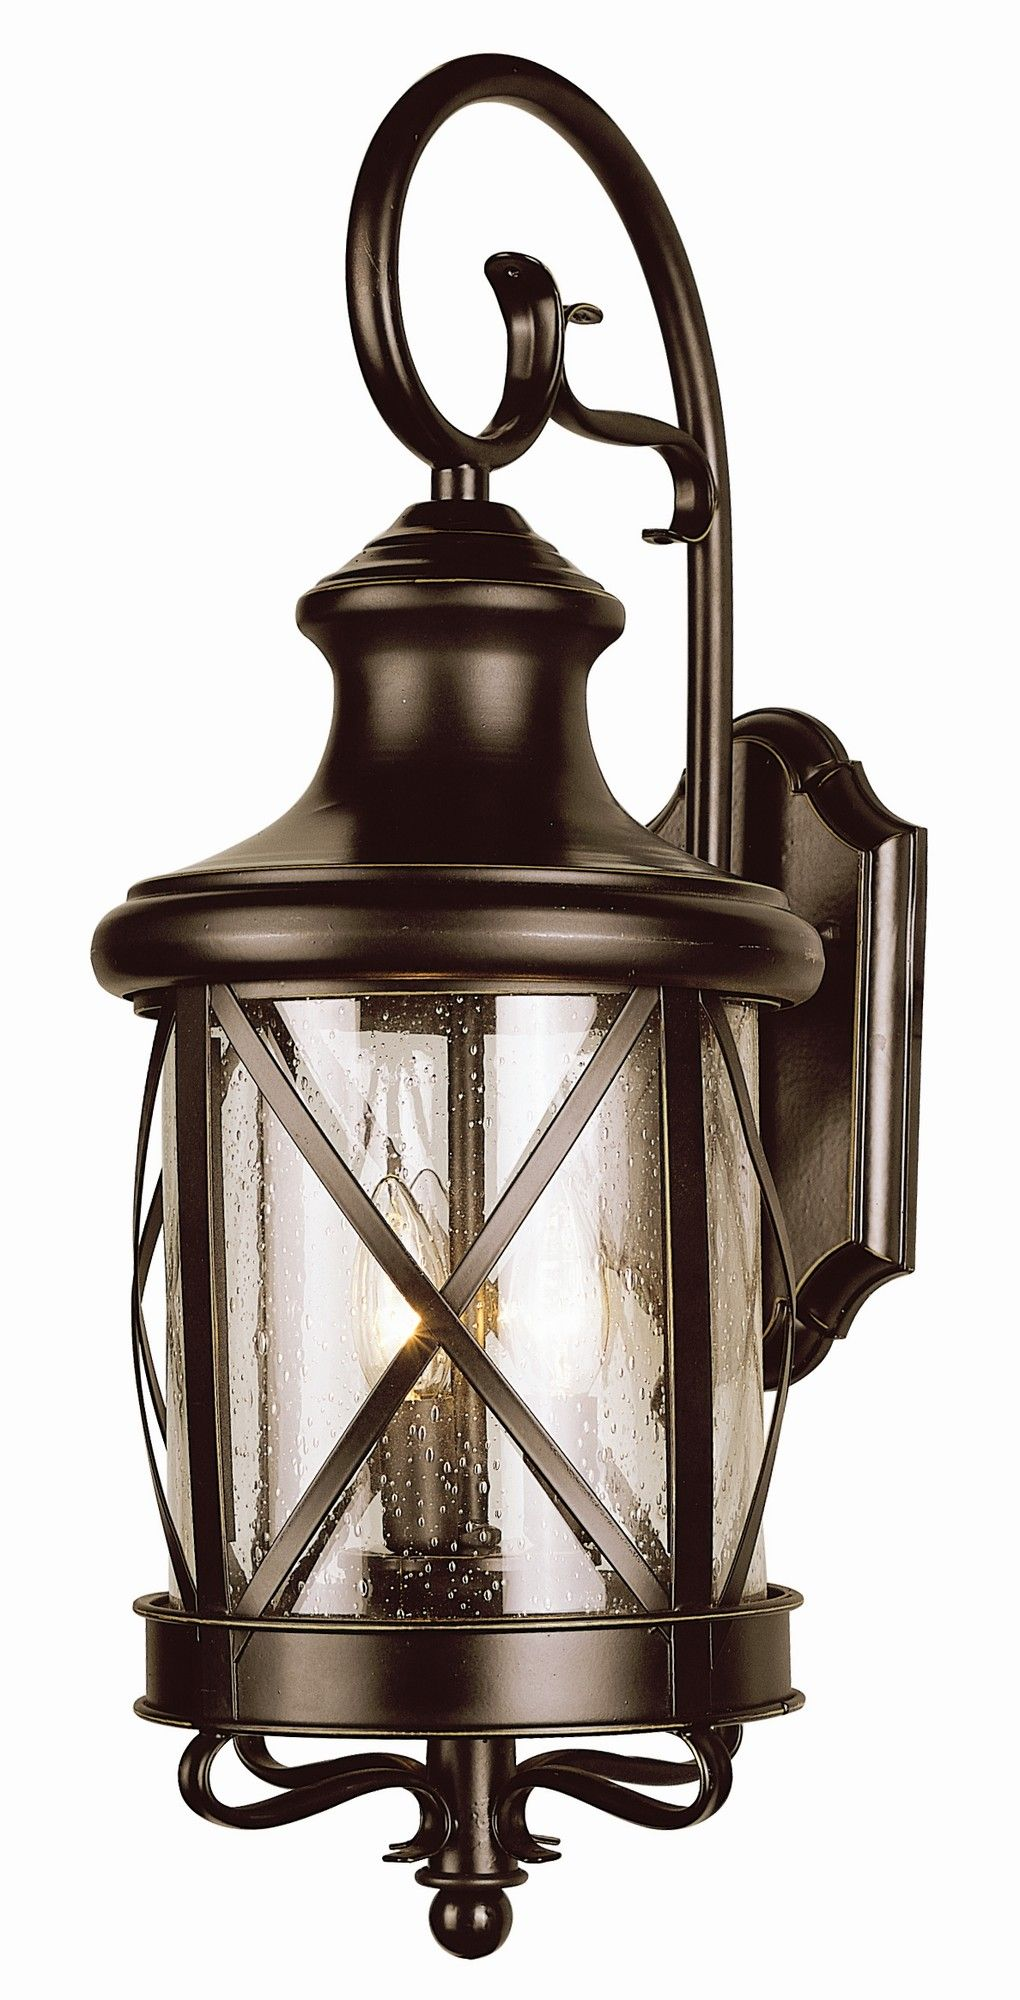 transglobe lighting outdoor wall lantern wayfair lighting